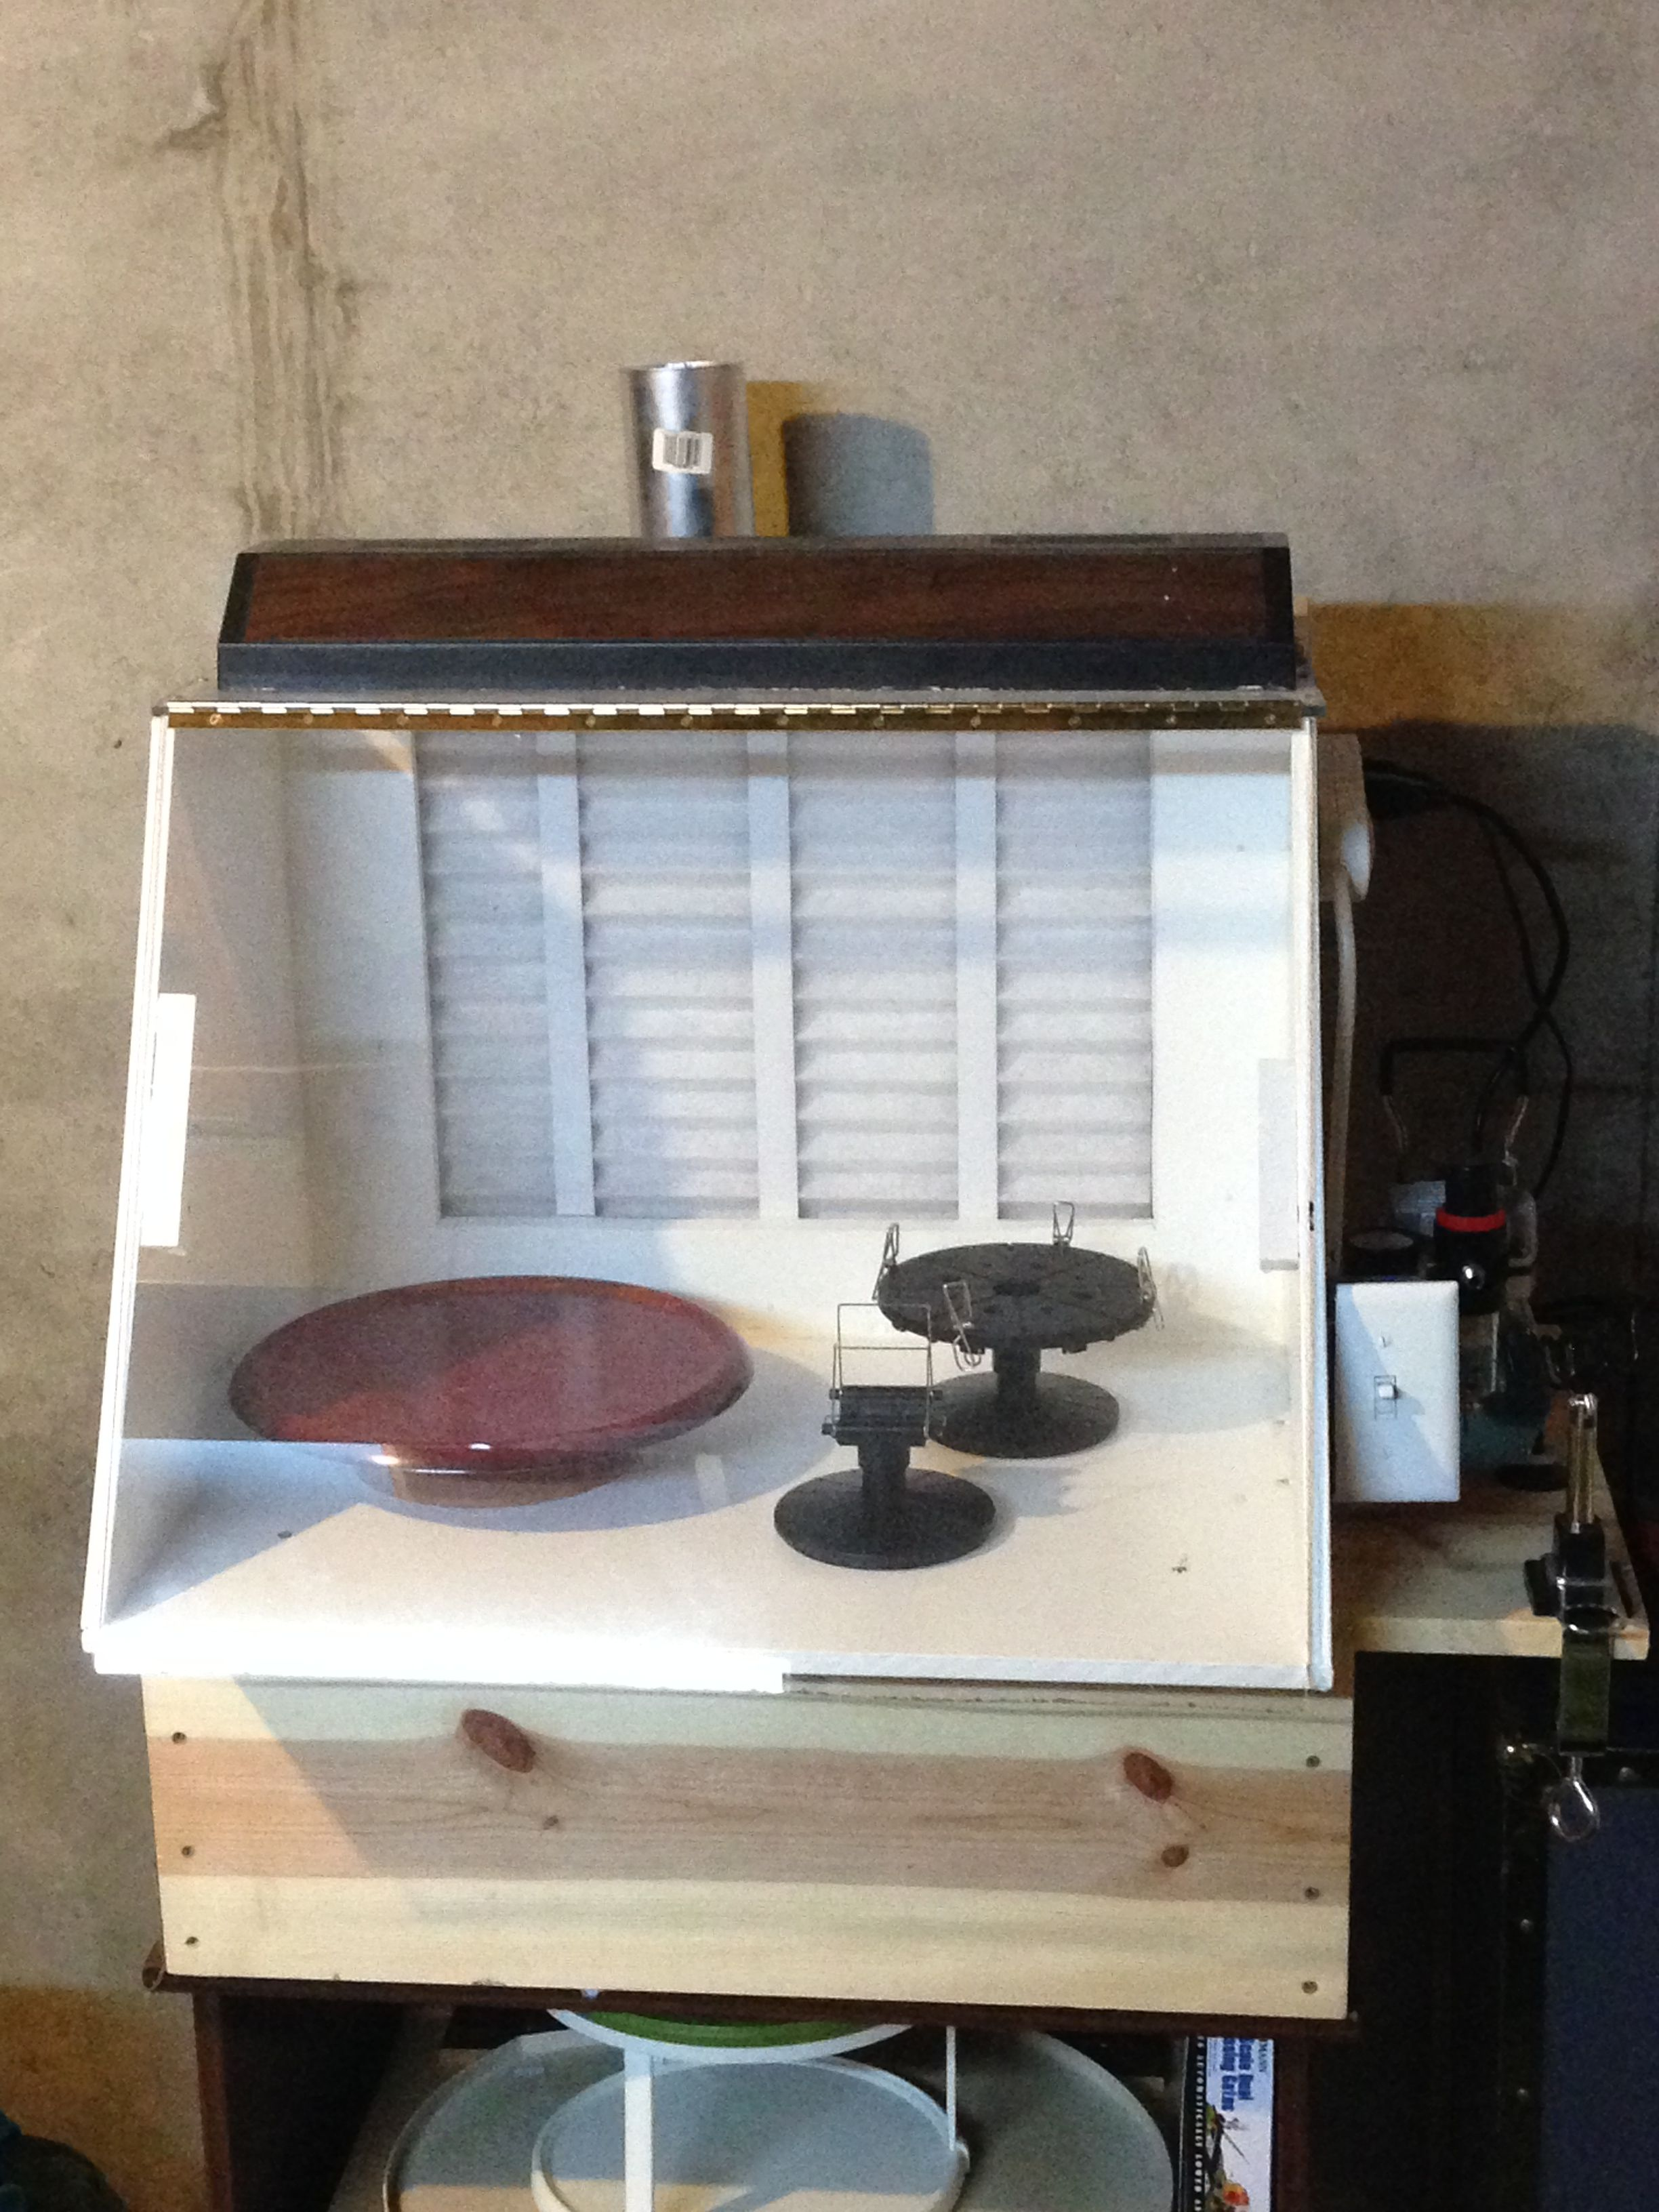 Custm Paint Booth Spray Booth Diy Diy Paint Booth Airbrush Spray Booth